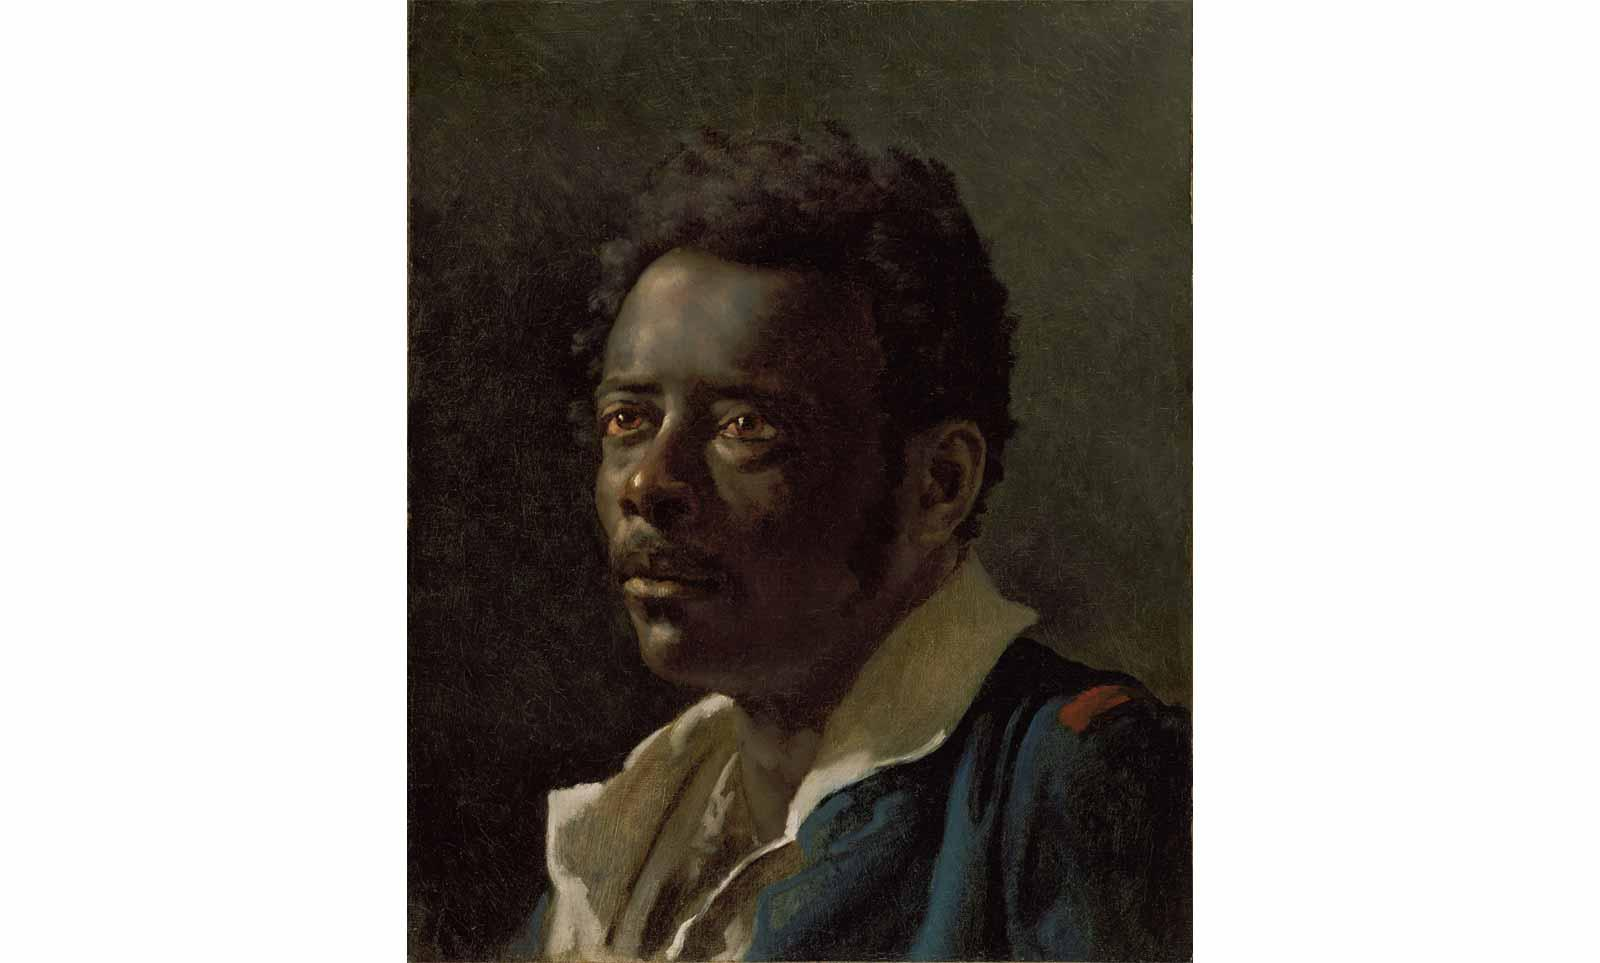 Théodore Géricault (1791-1824), Study of man, after the model Joseph, 1818-1819